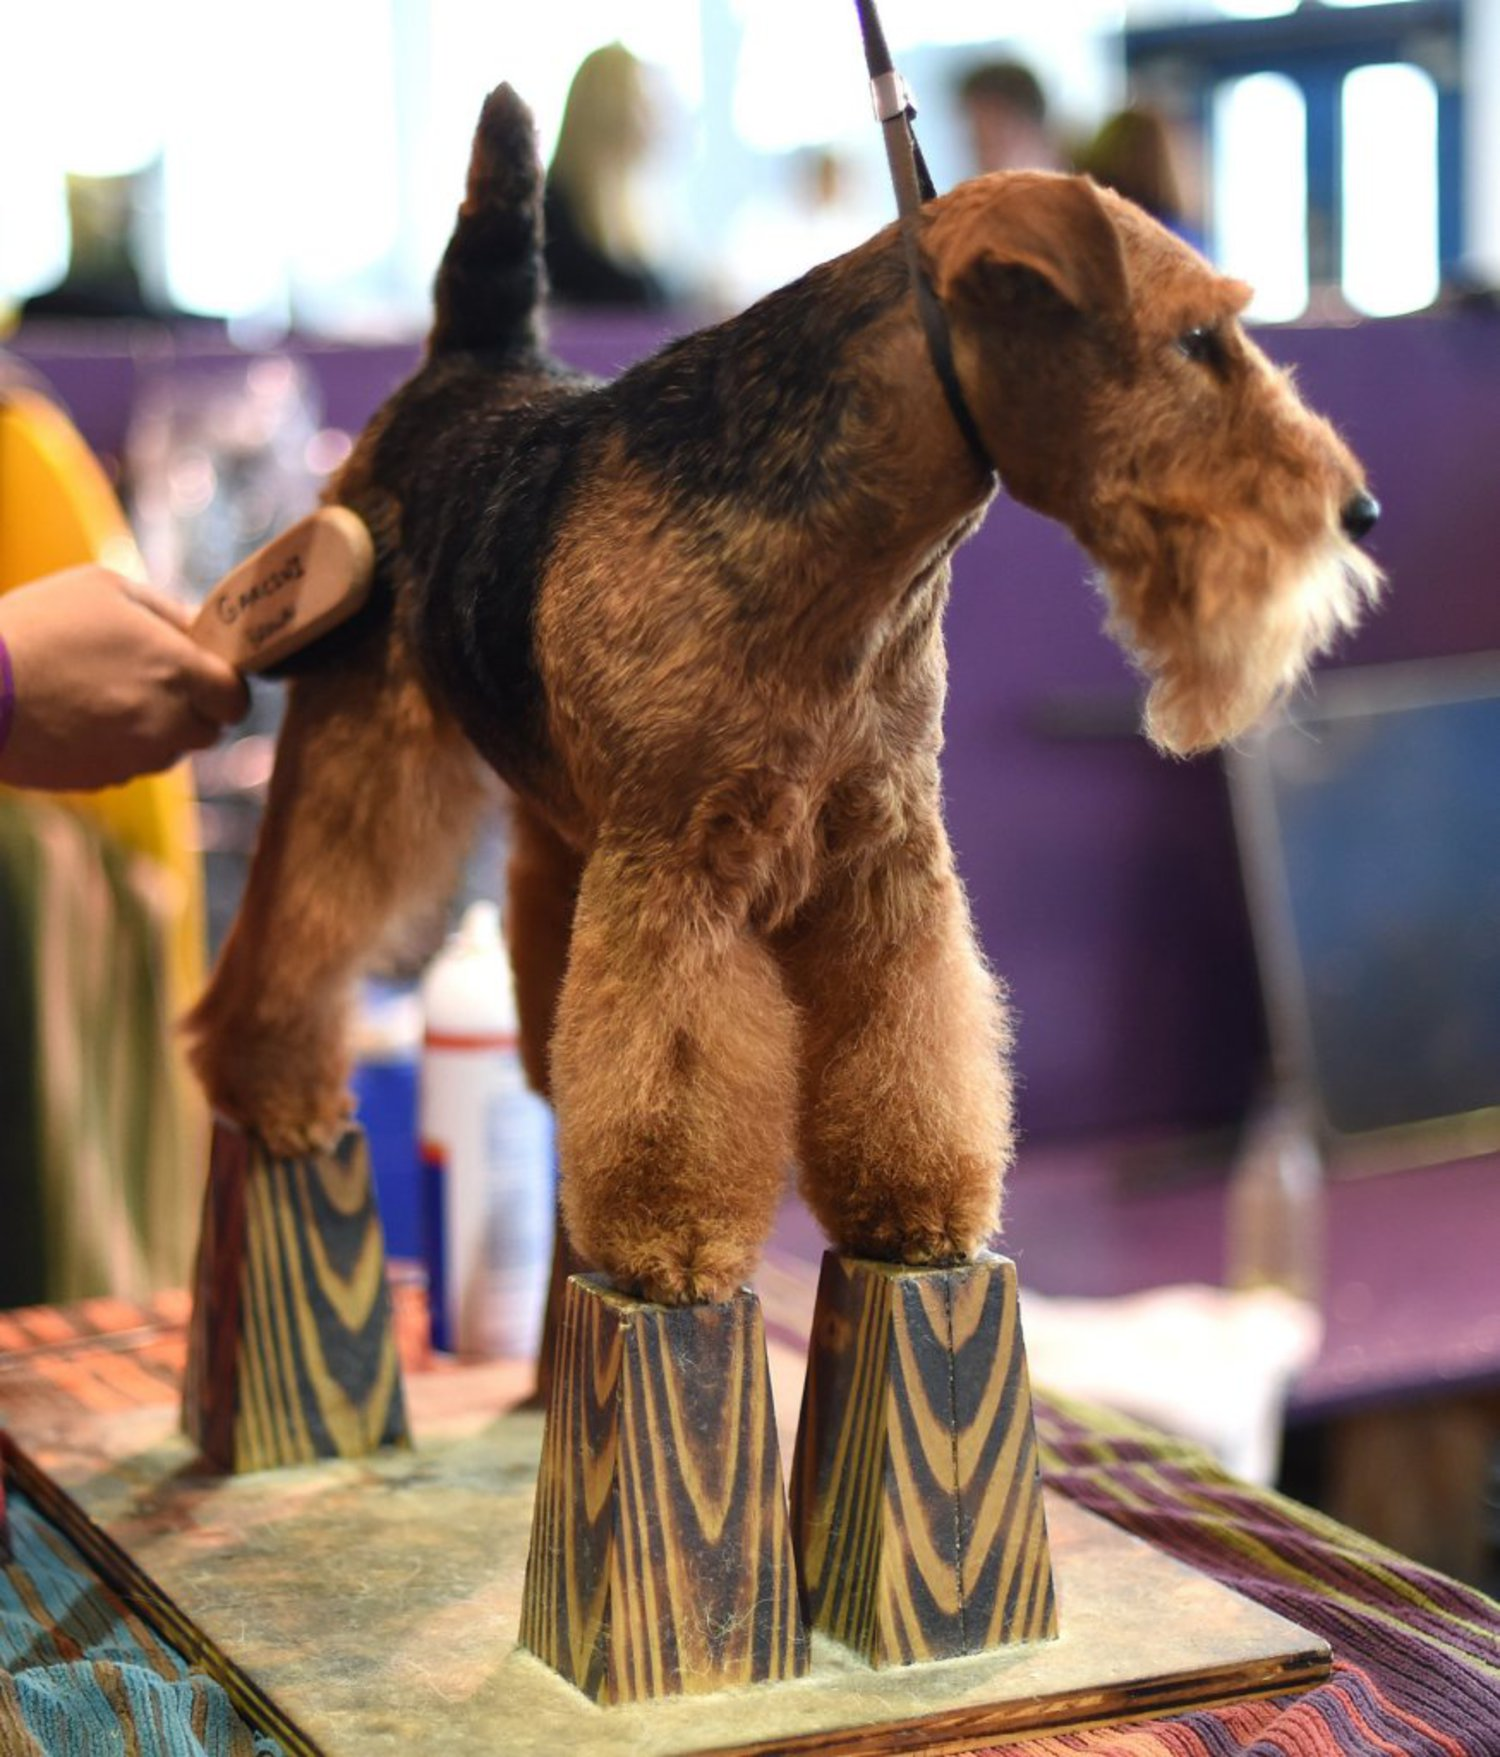 A Welsh Terrier stands on blocks during grooming in the benching area around Pier 92 and Pier 94 in New York City on the second day of competition at annual Westminster show, February 17, 2015.